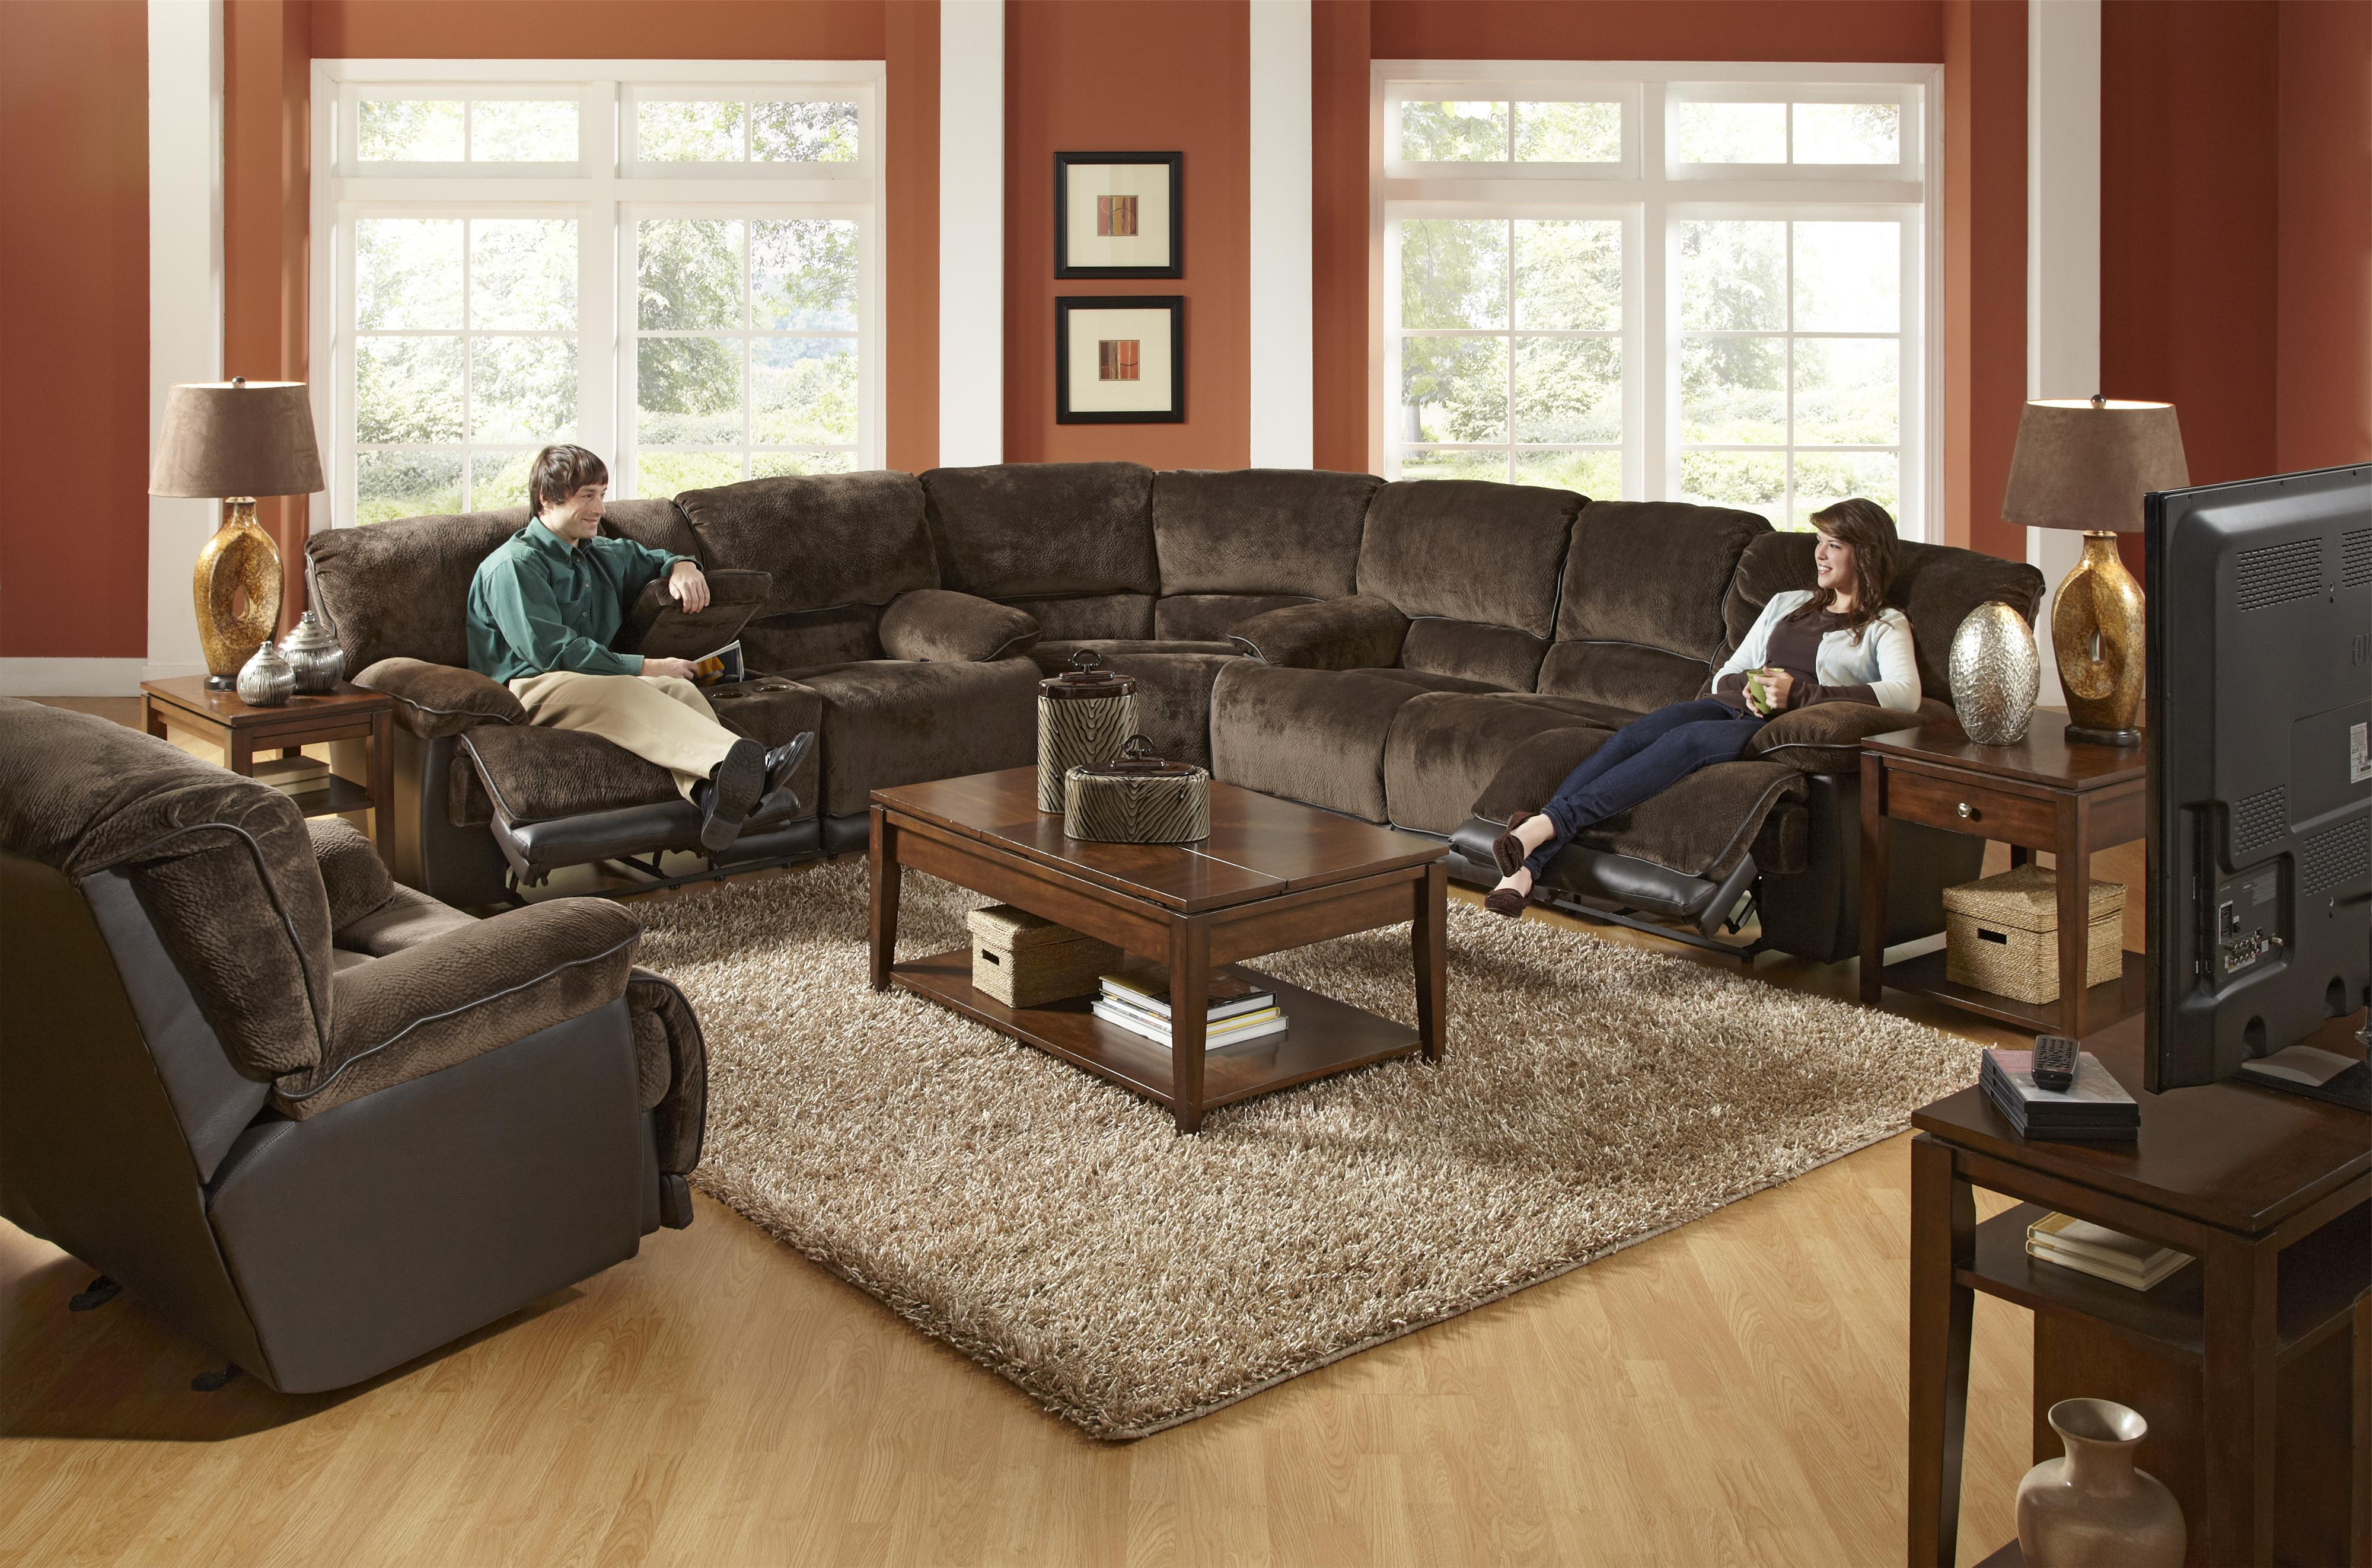 Declan 3 Piece Power Reclining Sectionals With Right Facing Console Loveseat For Most Popular Brown Wraparound Couch Championship Chocolate Reclining (View 2 of 20)